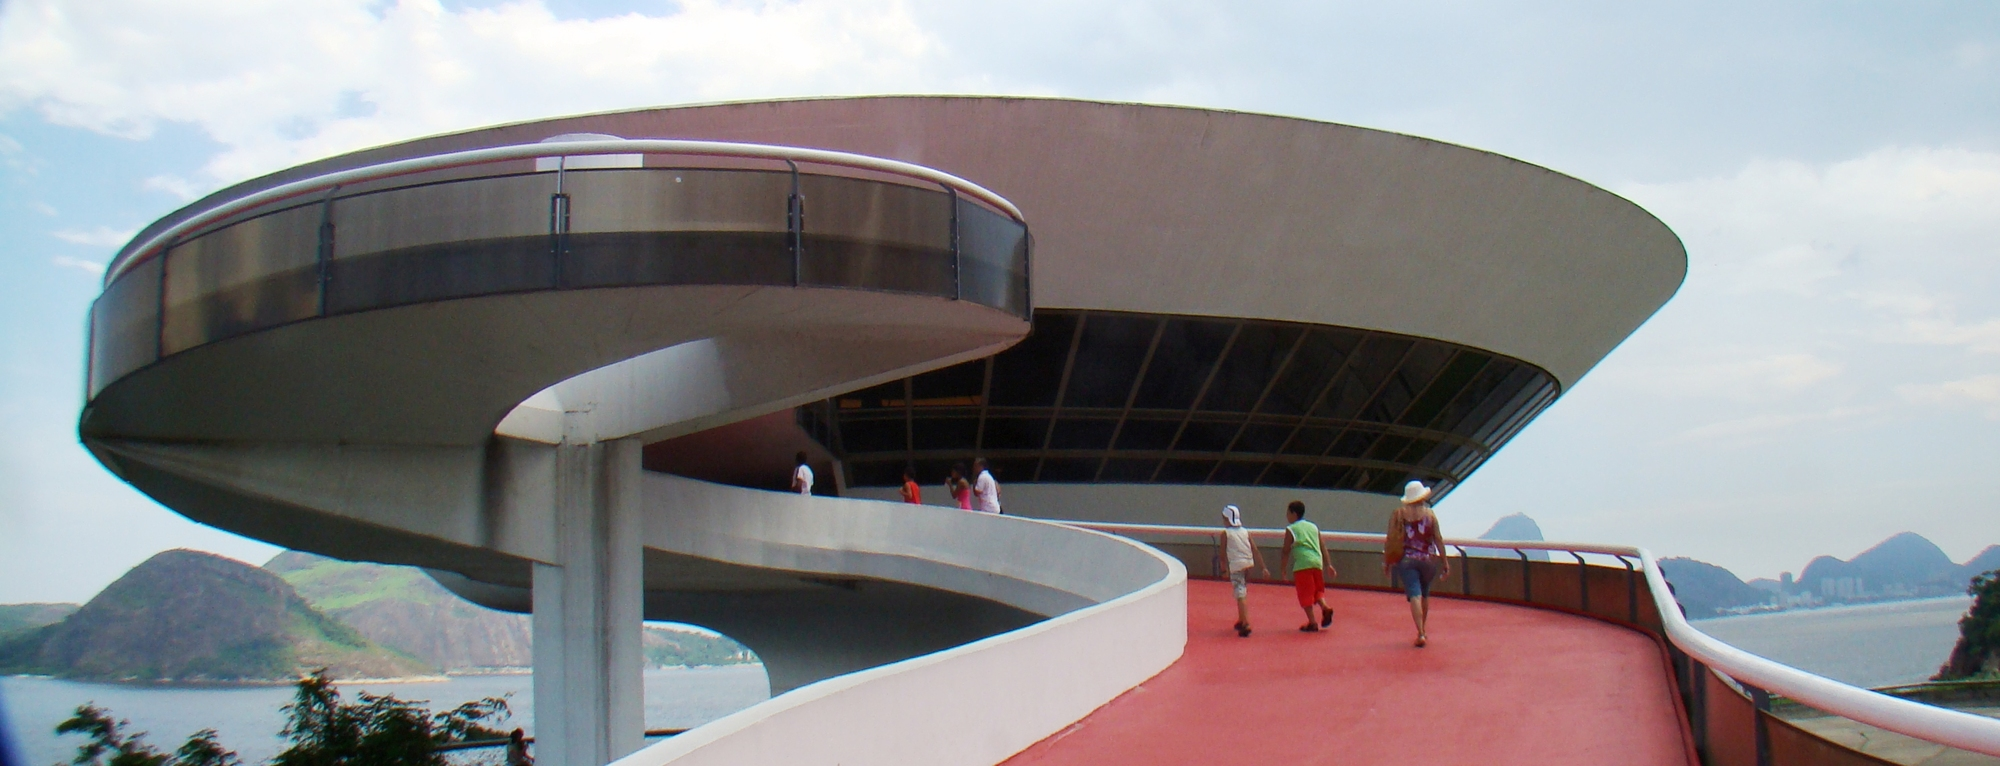 museum of contemporary art basel by oscar niemeyer architecture